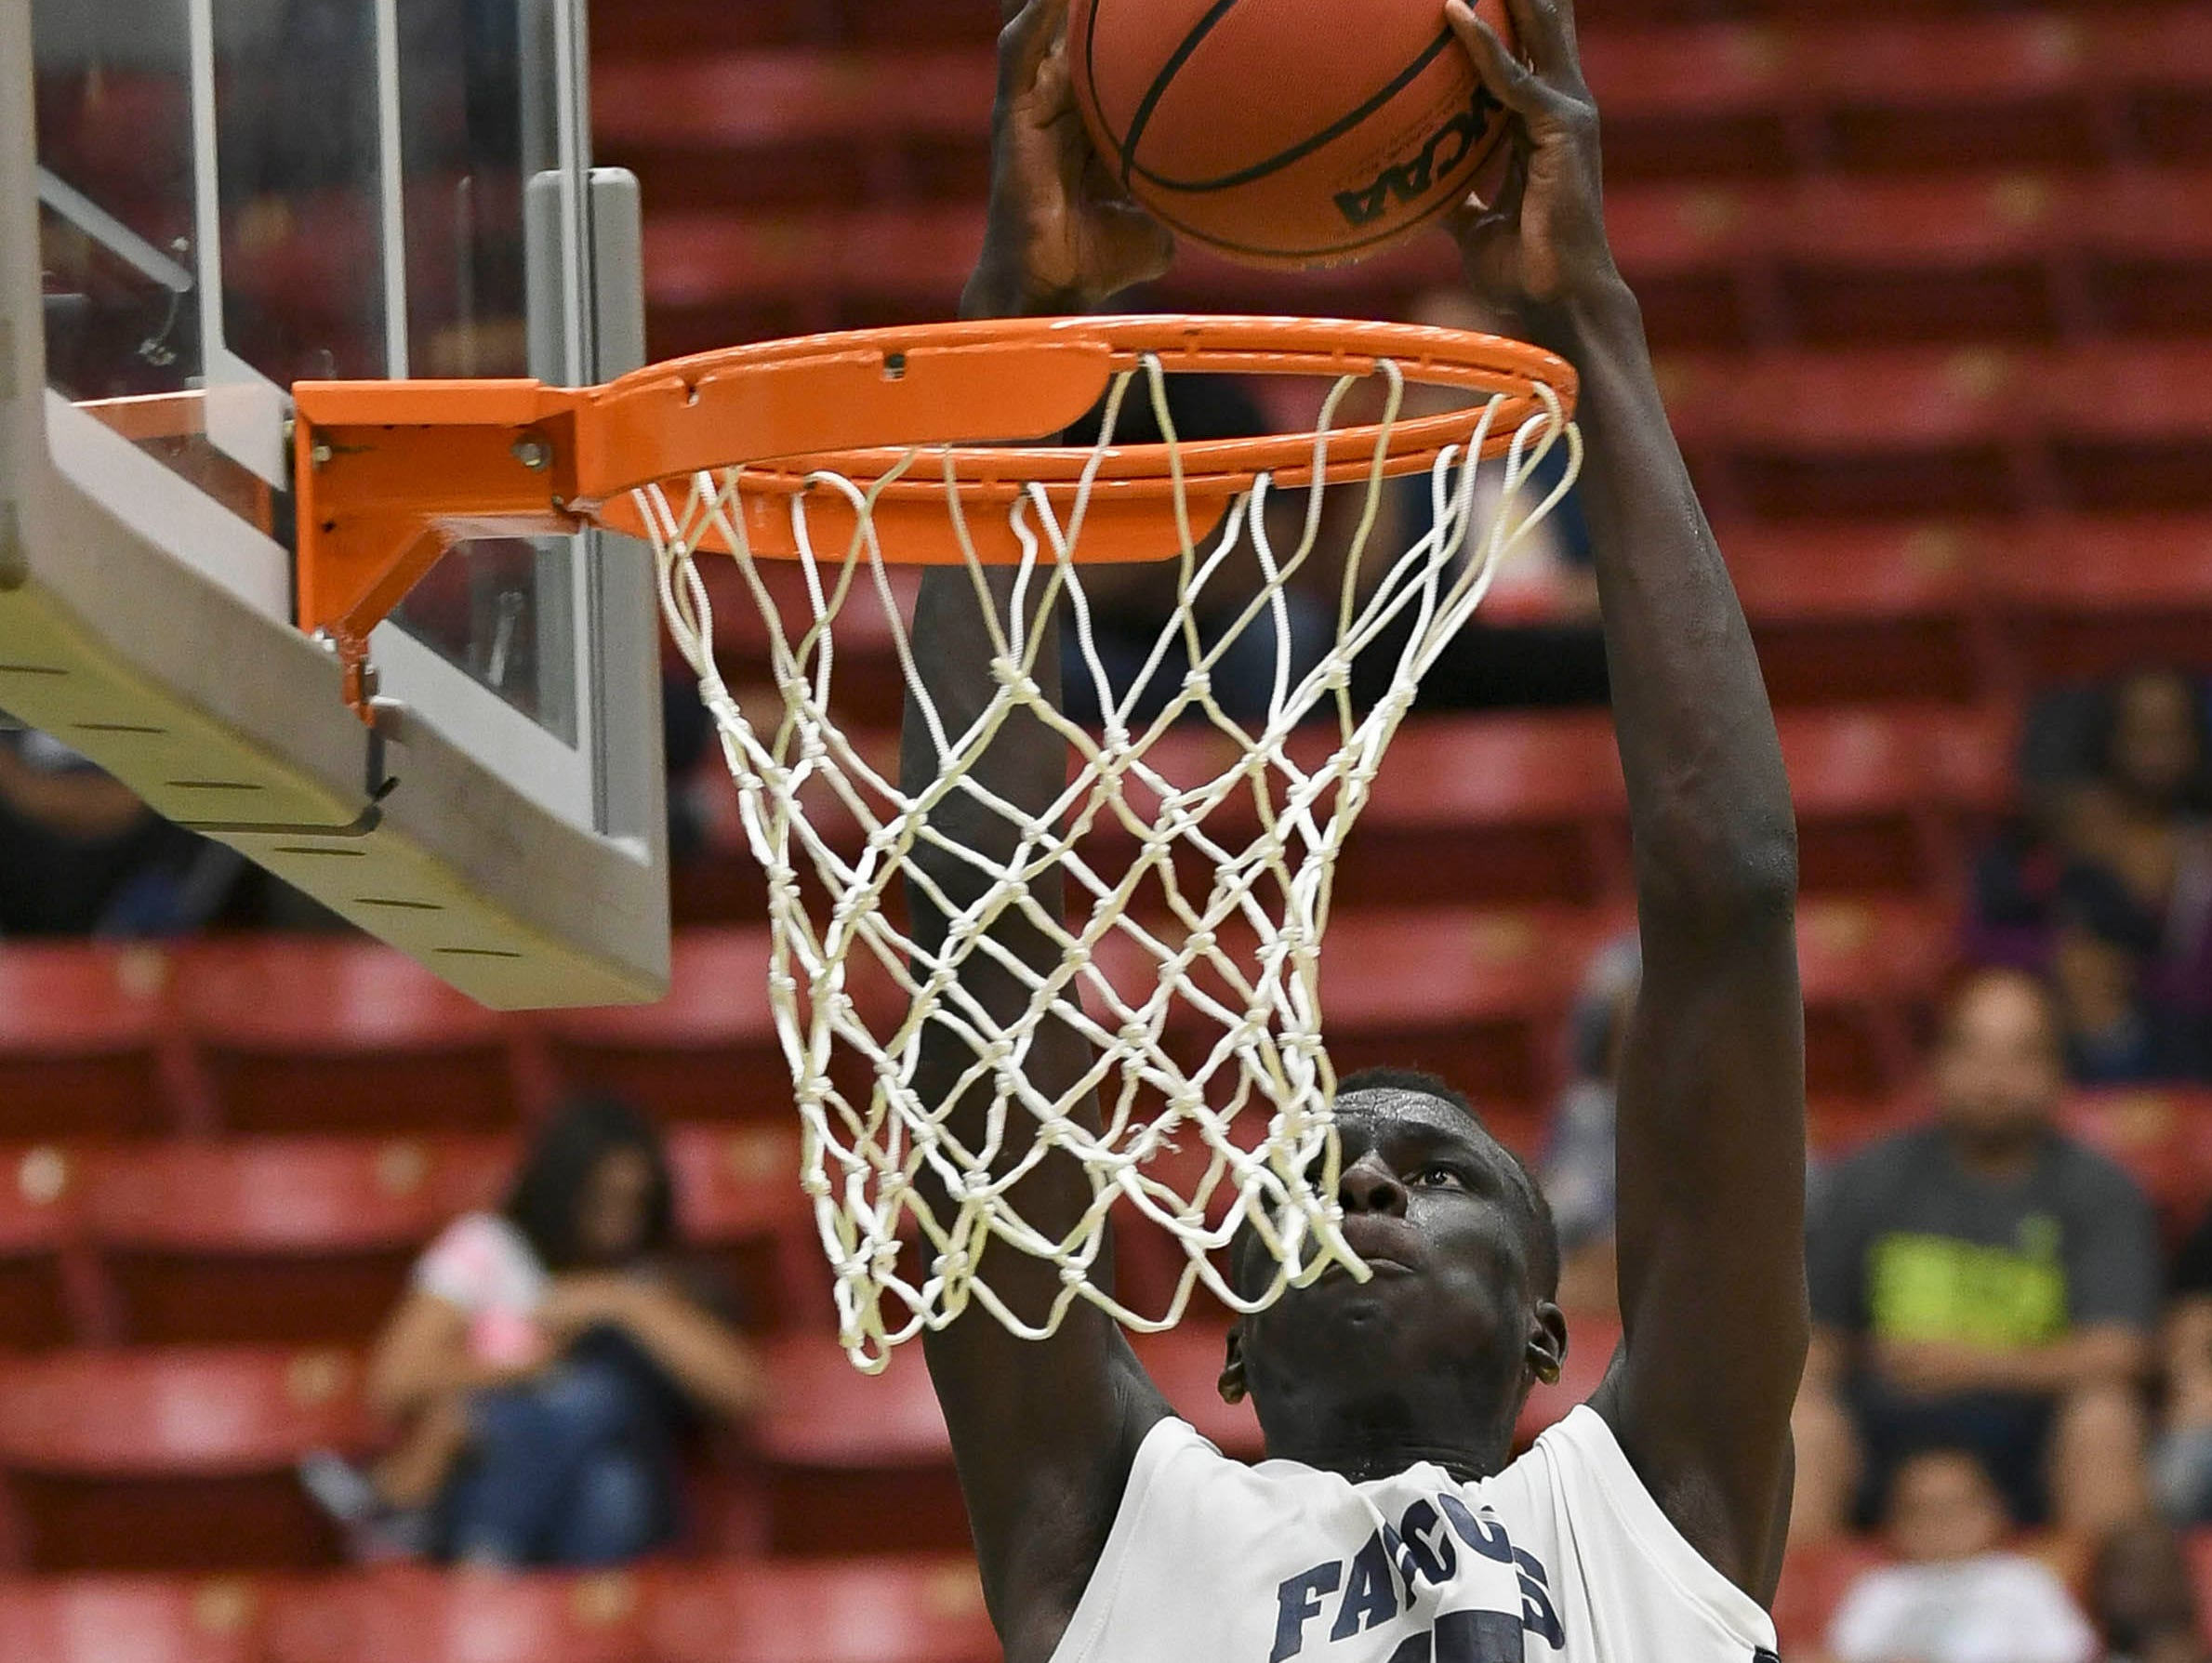 Mbacke Diong of Florida Prep dunks the ball during Wednesday's Class 2A basketball final.